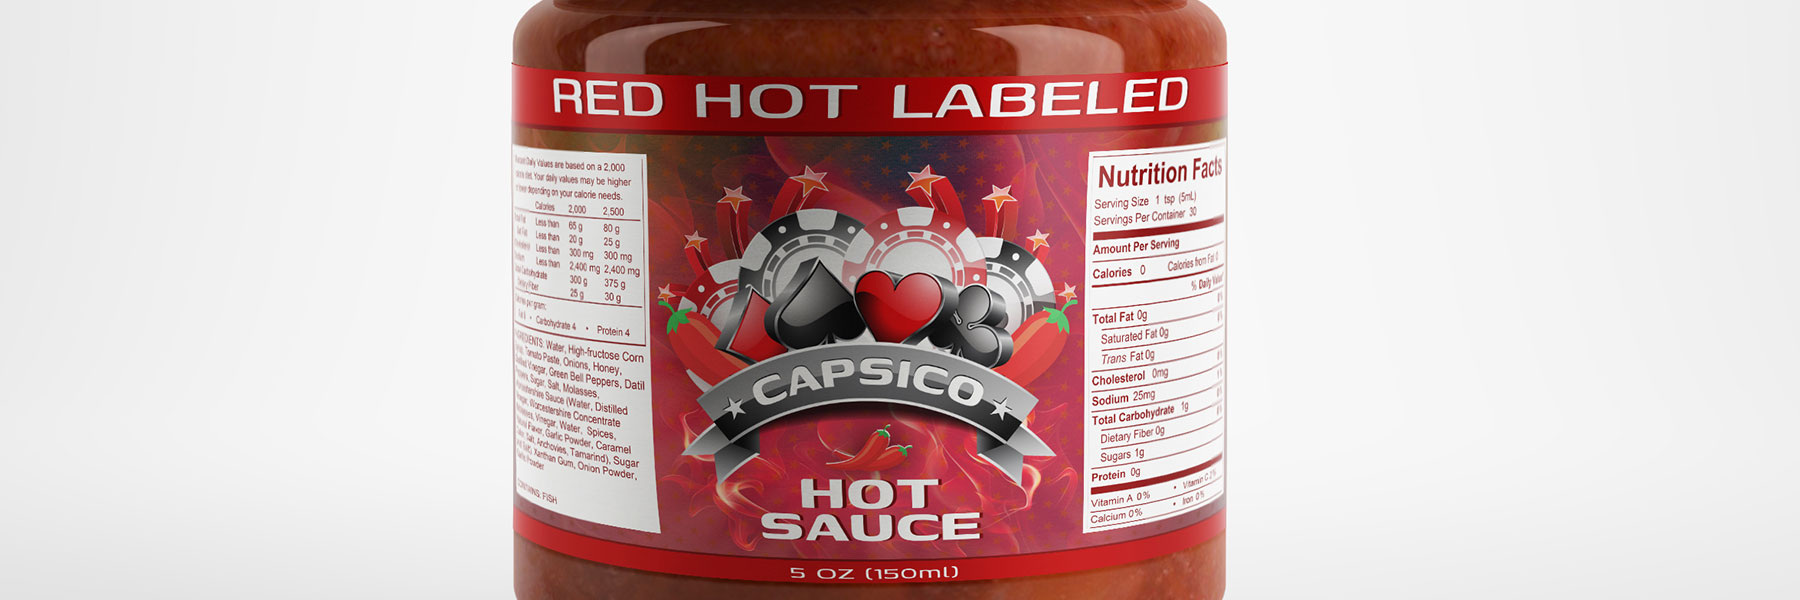 Hot Sauce Lable